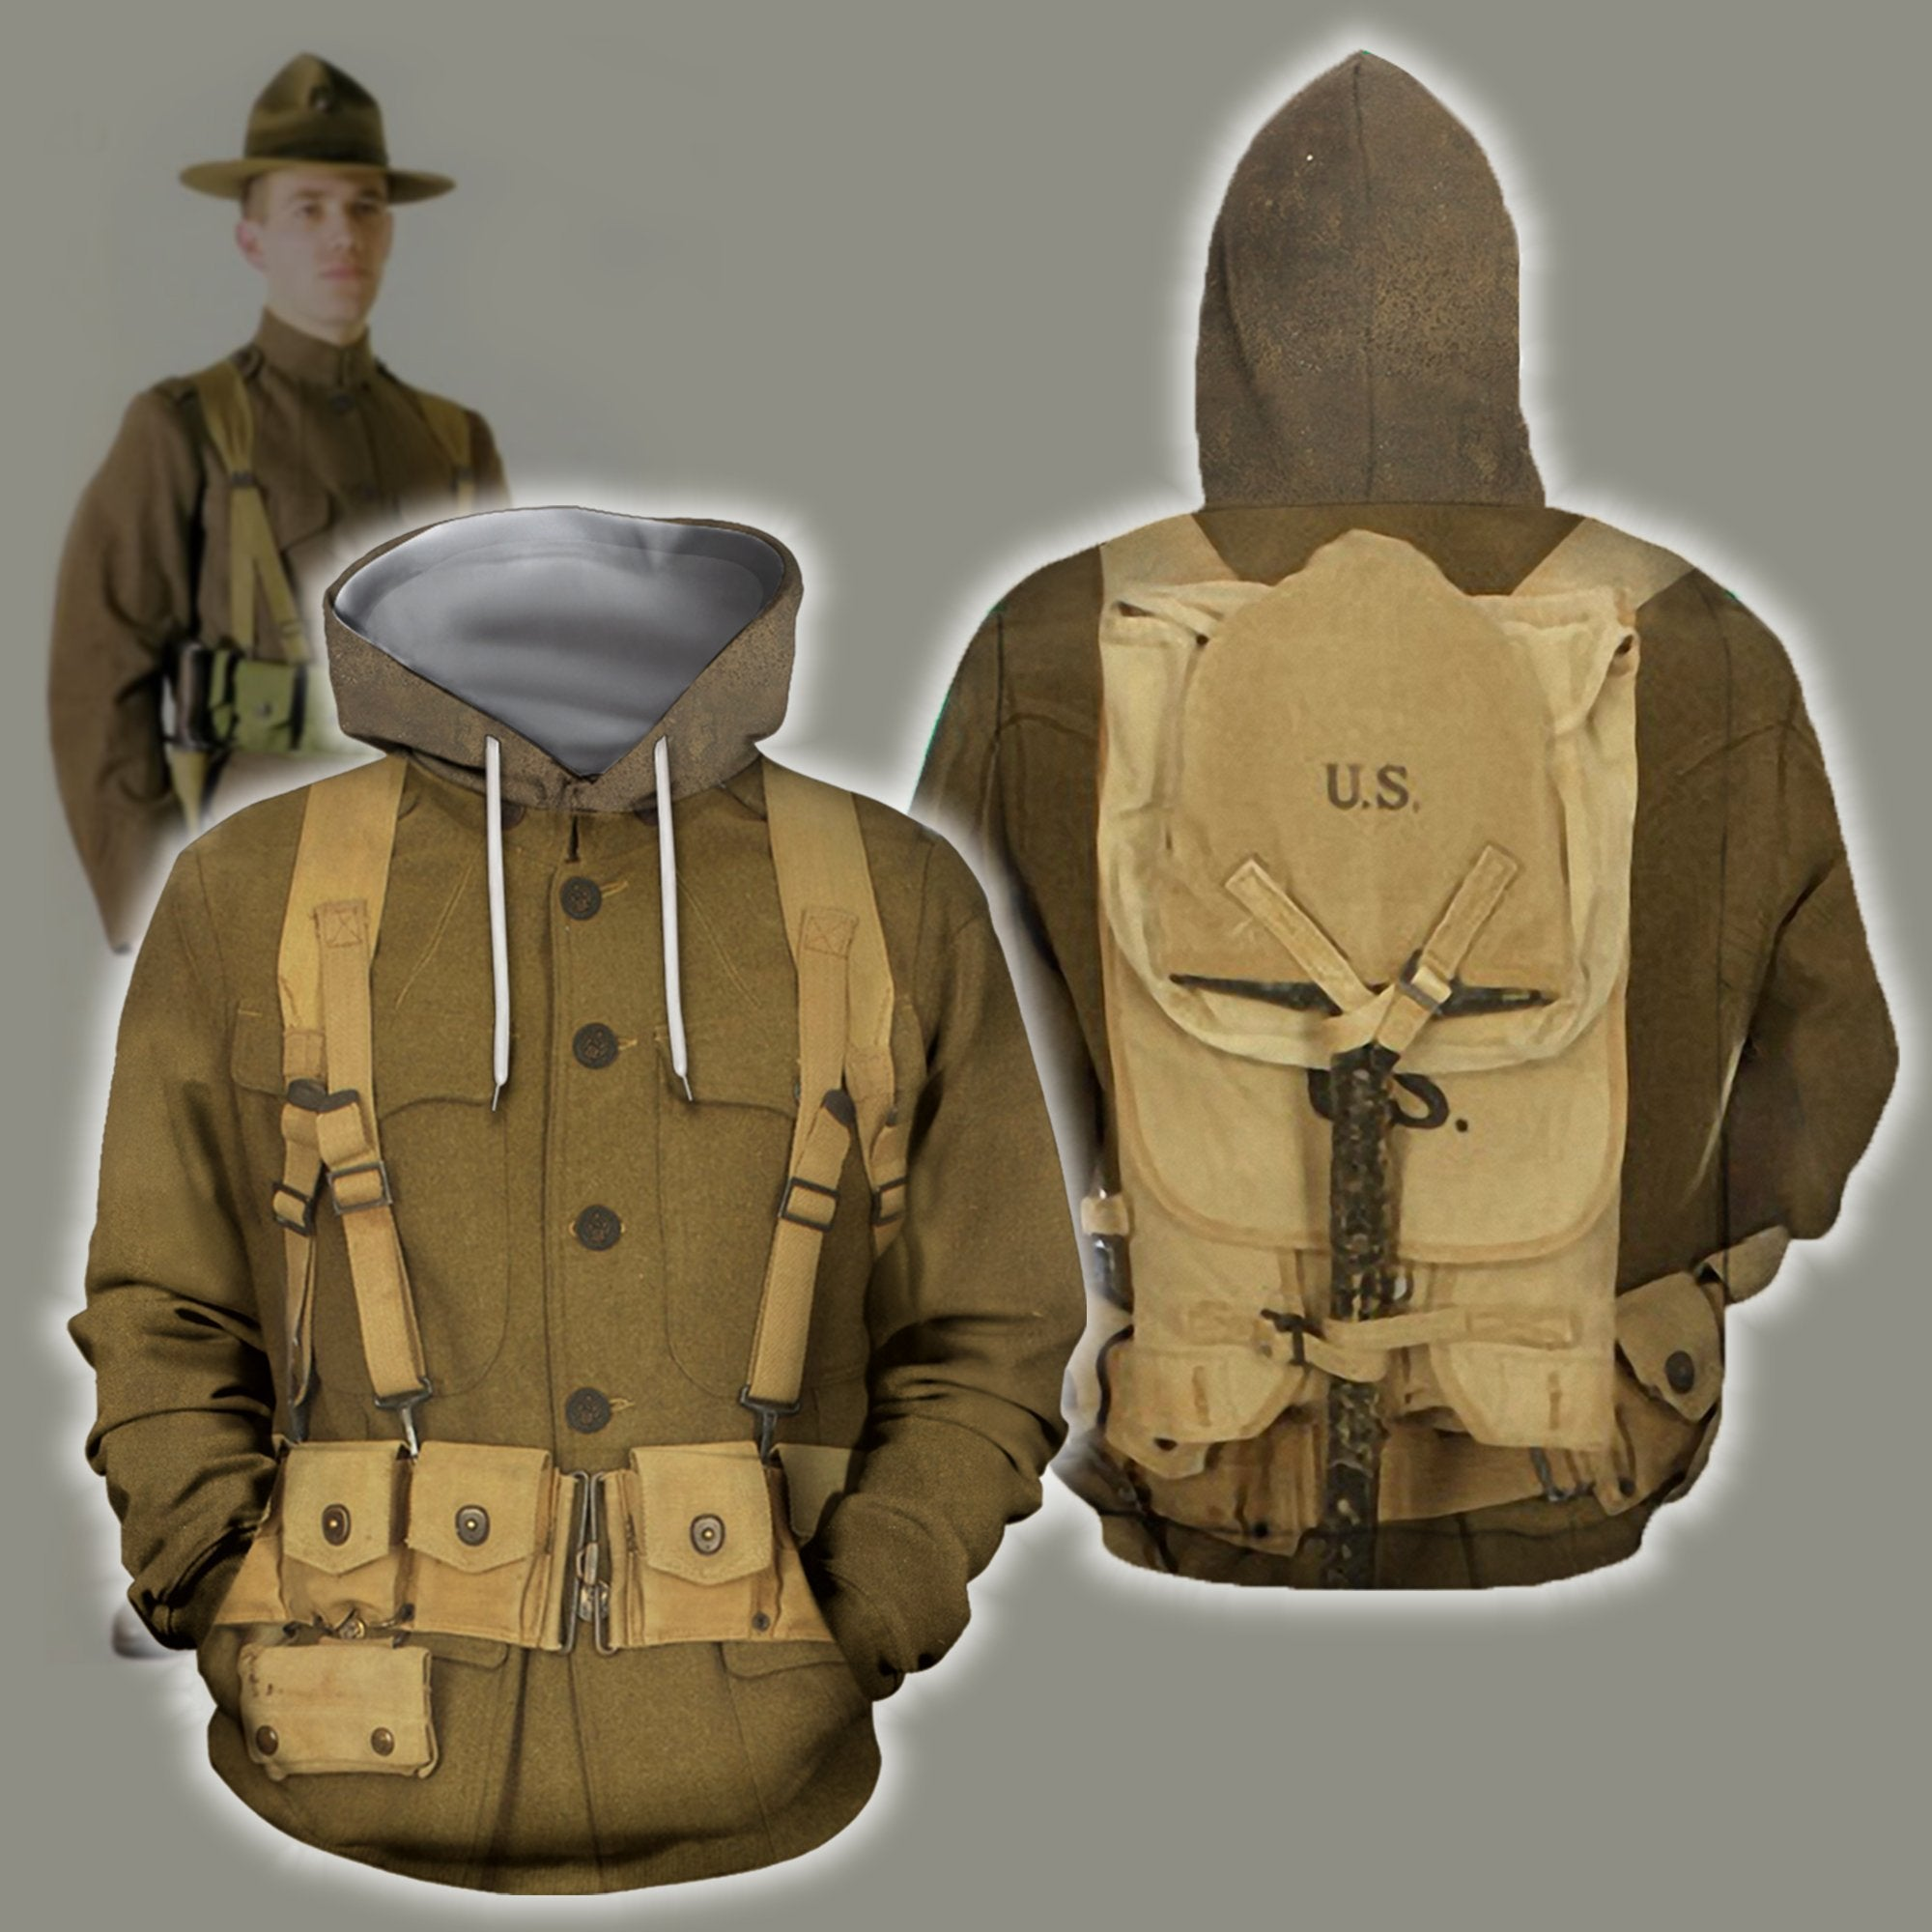 3D All Over Printed U.S. WWI Soldier Shirts - Amaze Style™-Apparel